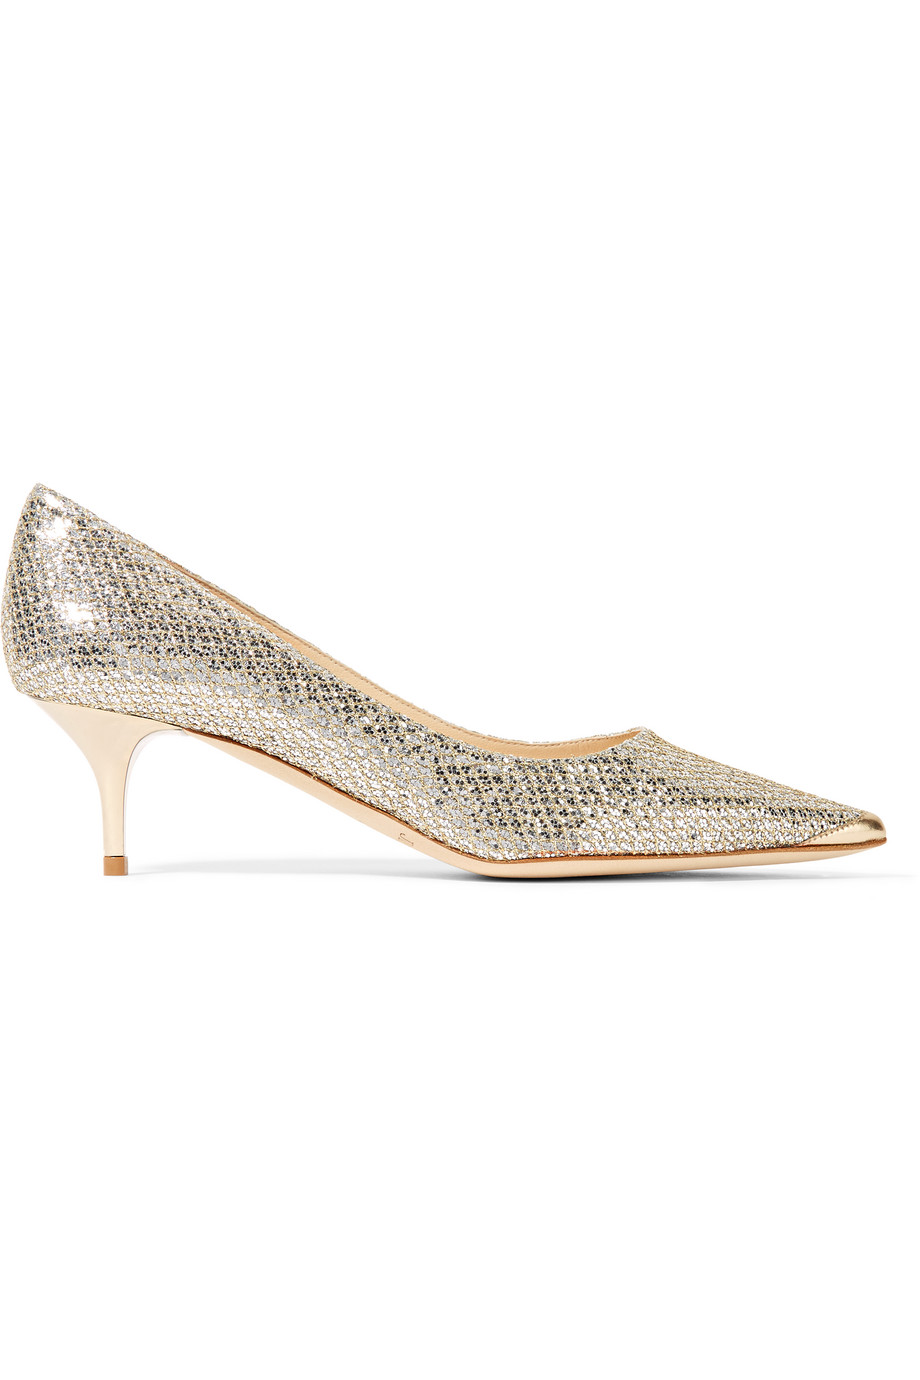 Jimmy Choo Aza Glittered Leather Pumps, Gold, Women's US Size: 6.5, Size: 37